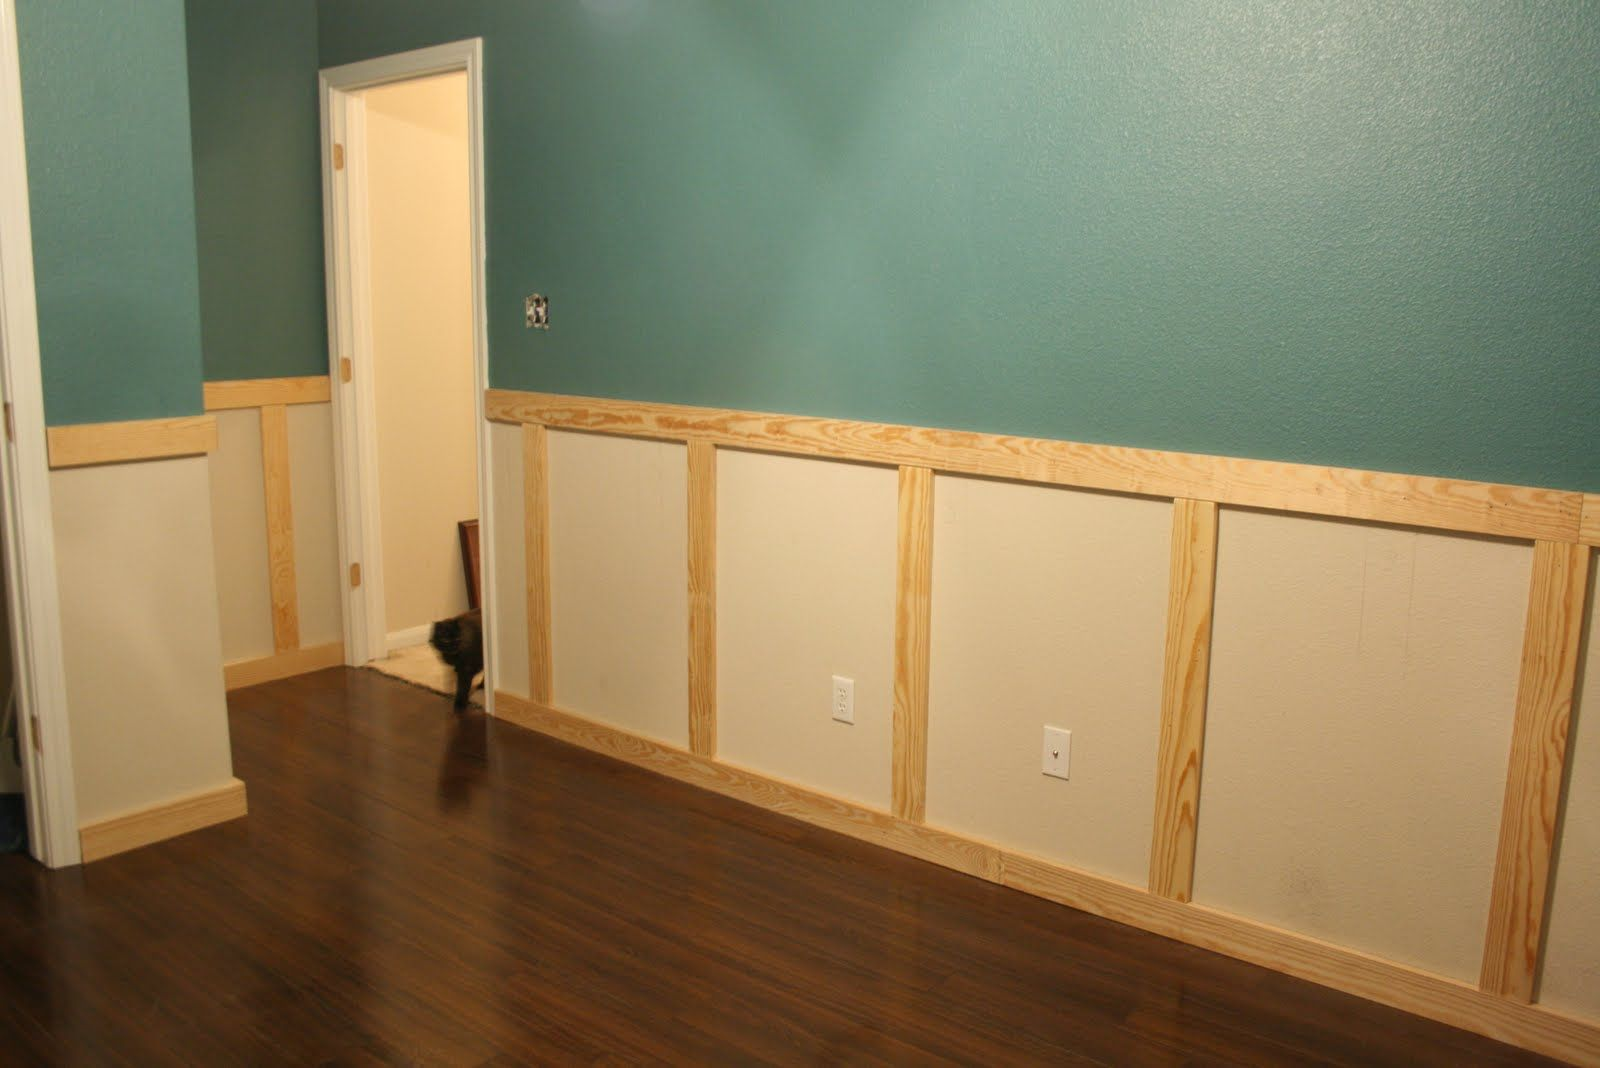 How To Balance Wall U0026 Wainscot Paint Colors   Picture Frame Wainscoting,  Wainscoting And Moldings